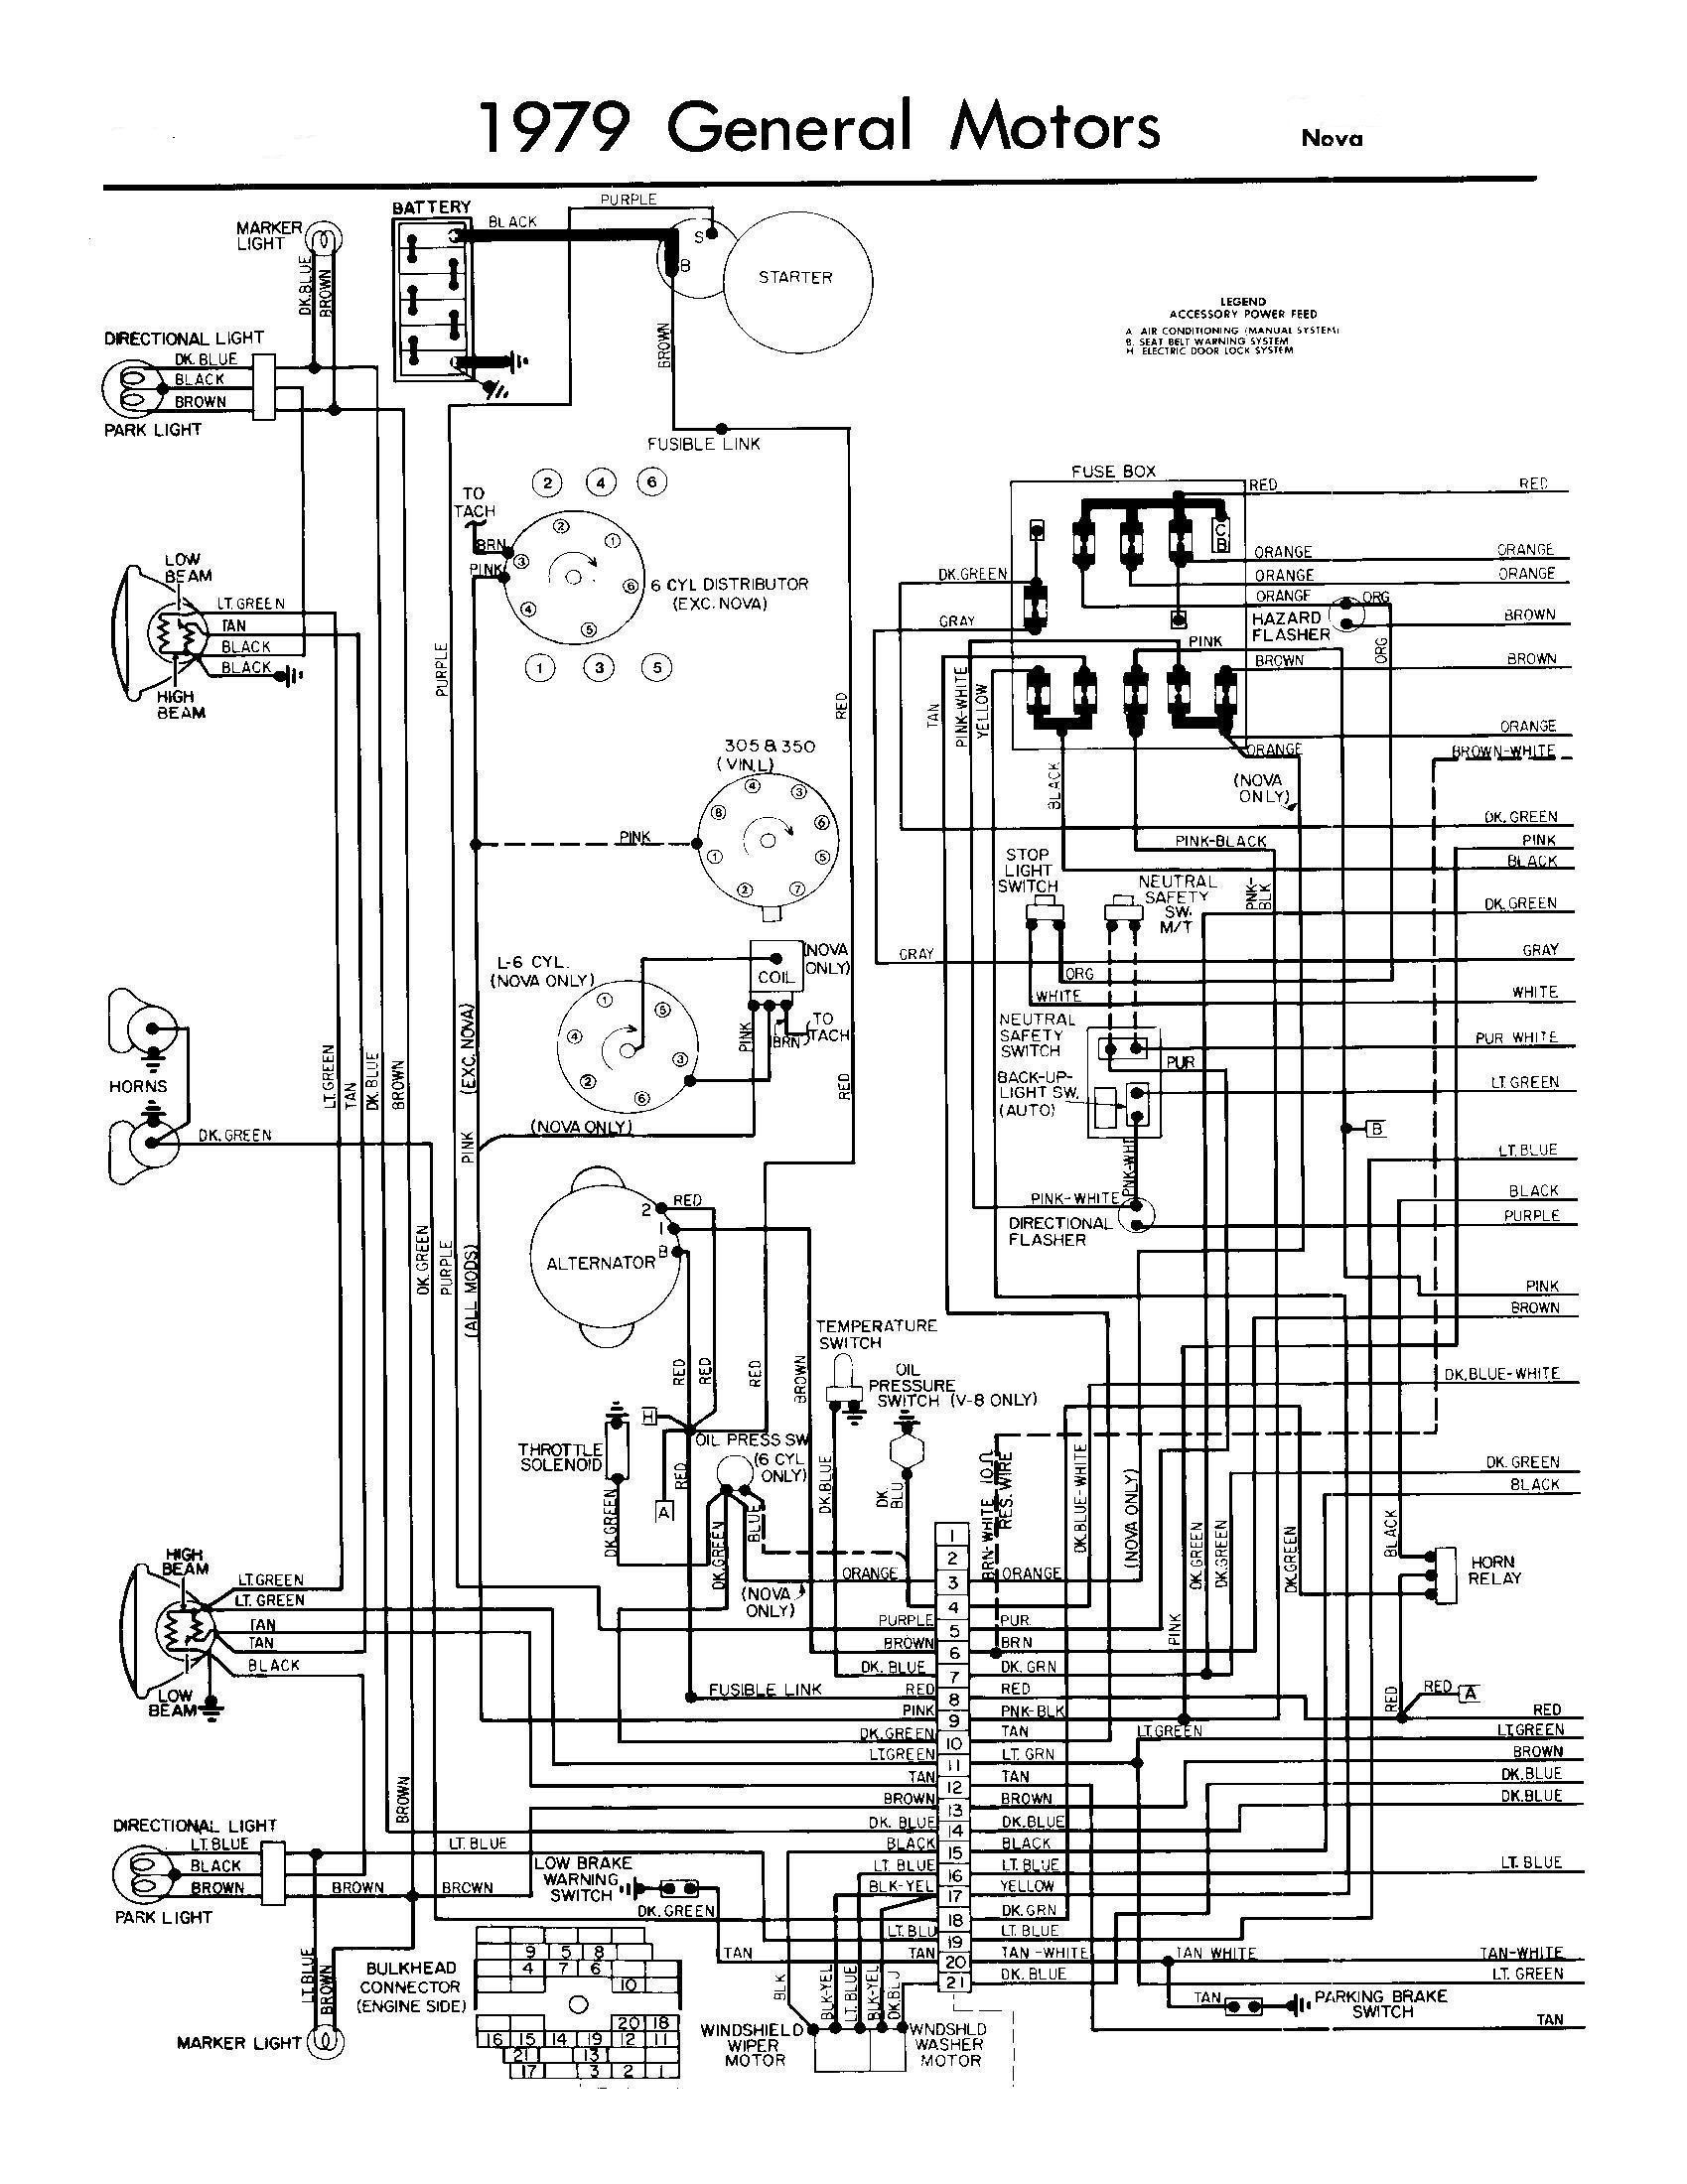 63 impala wiring diagram wiring diagram 1975 corvette wiring diagram 1975 impala wiring diagram #1